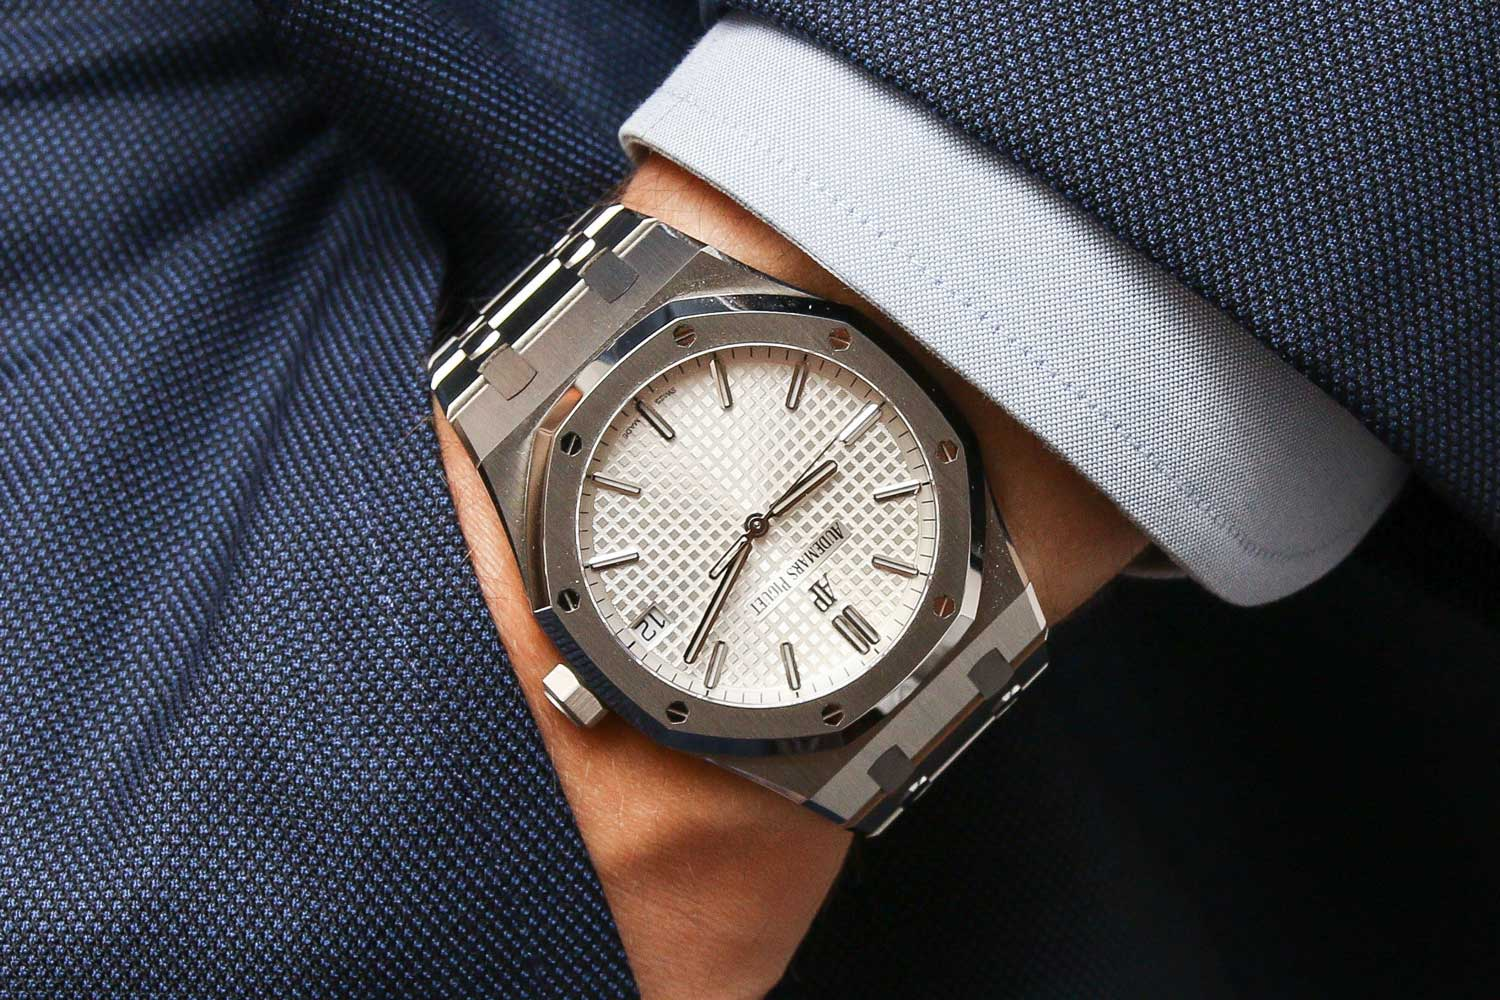 The Royal Oak is versatile enough to be worn casually or formally.(©Revolution)